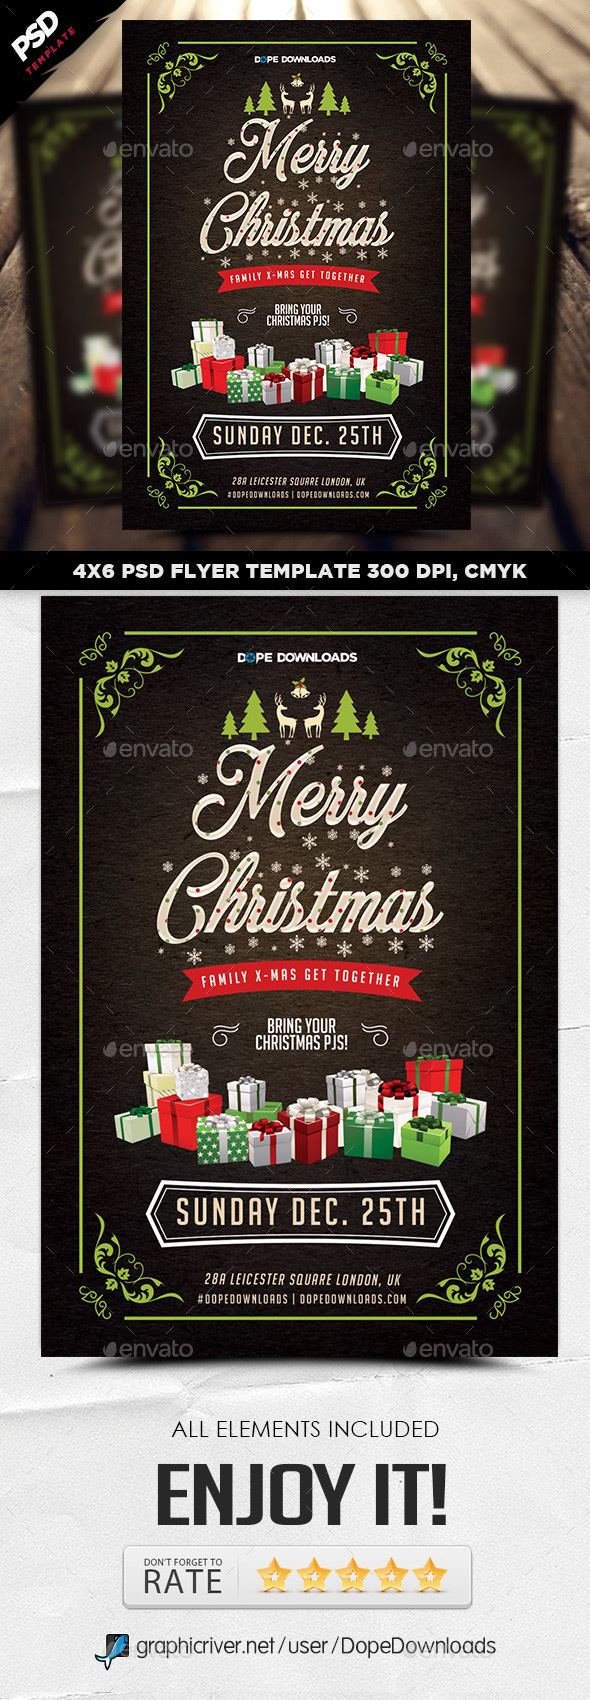 Family Christmas Party Flyer Template